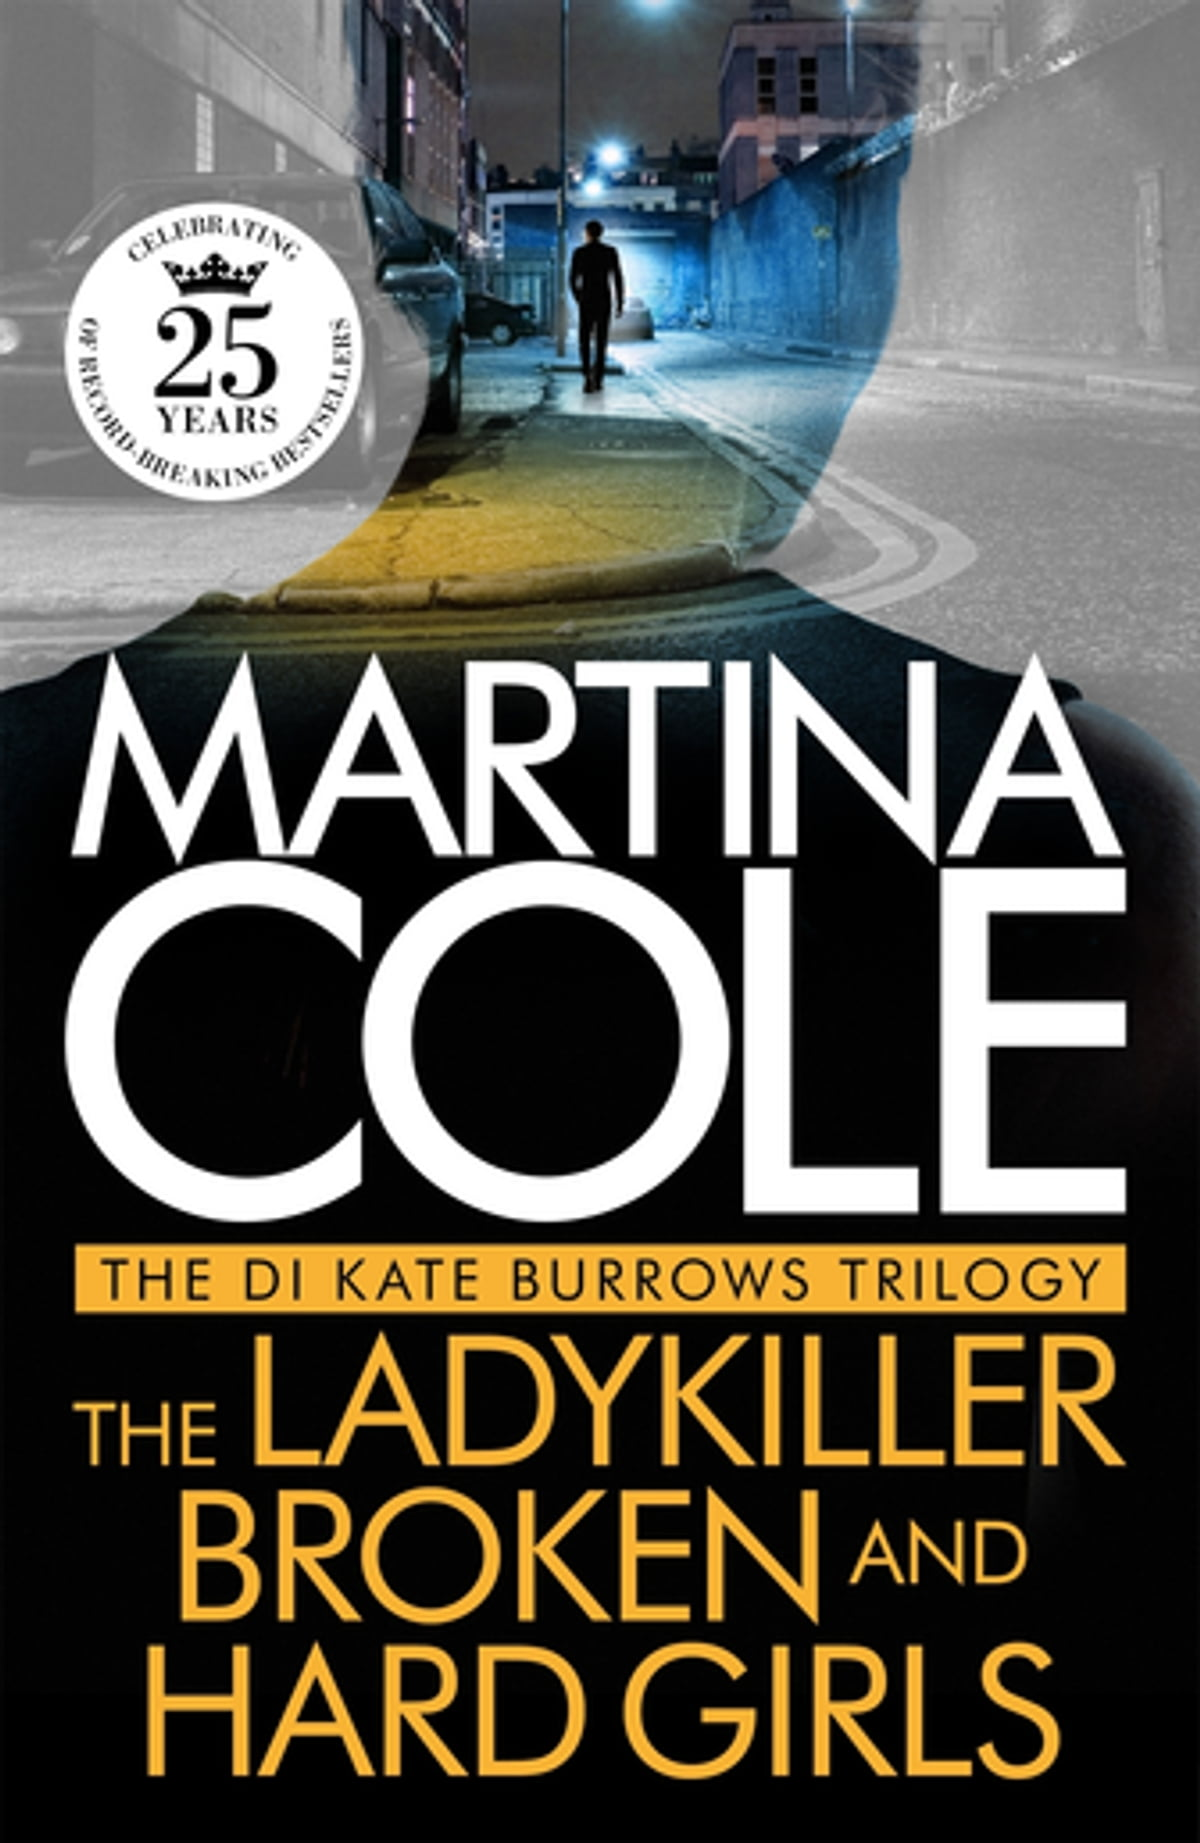 The Di Kate Burrows Trilogy: The Ladykiller, Broken, Hard Girls Ebook By  Martina